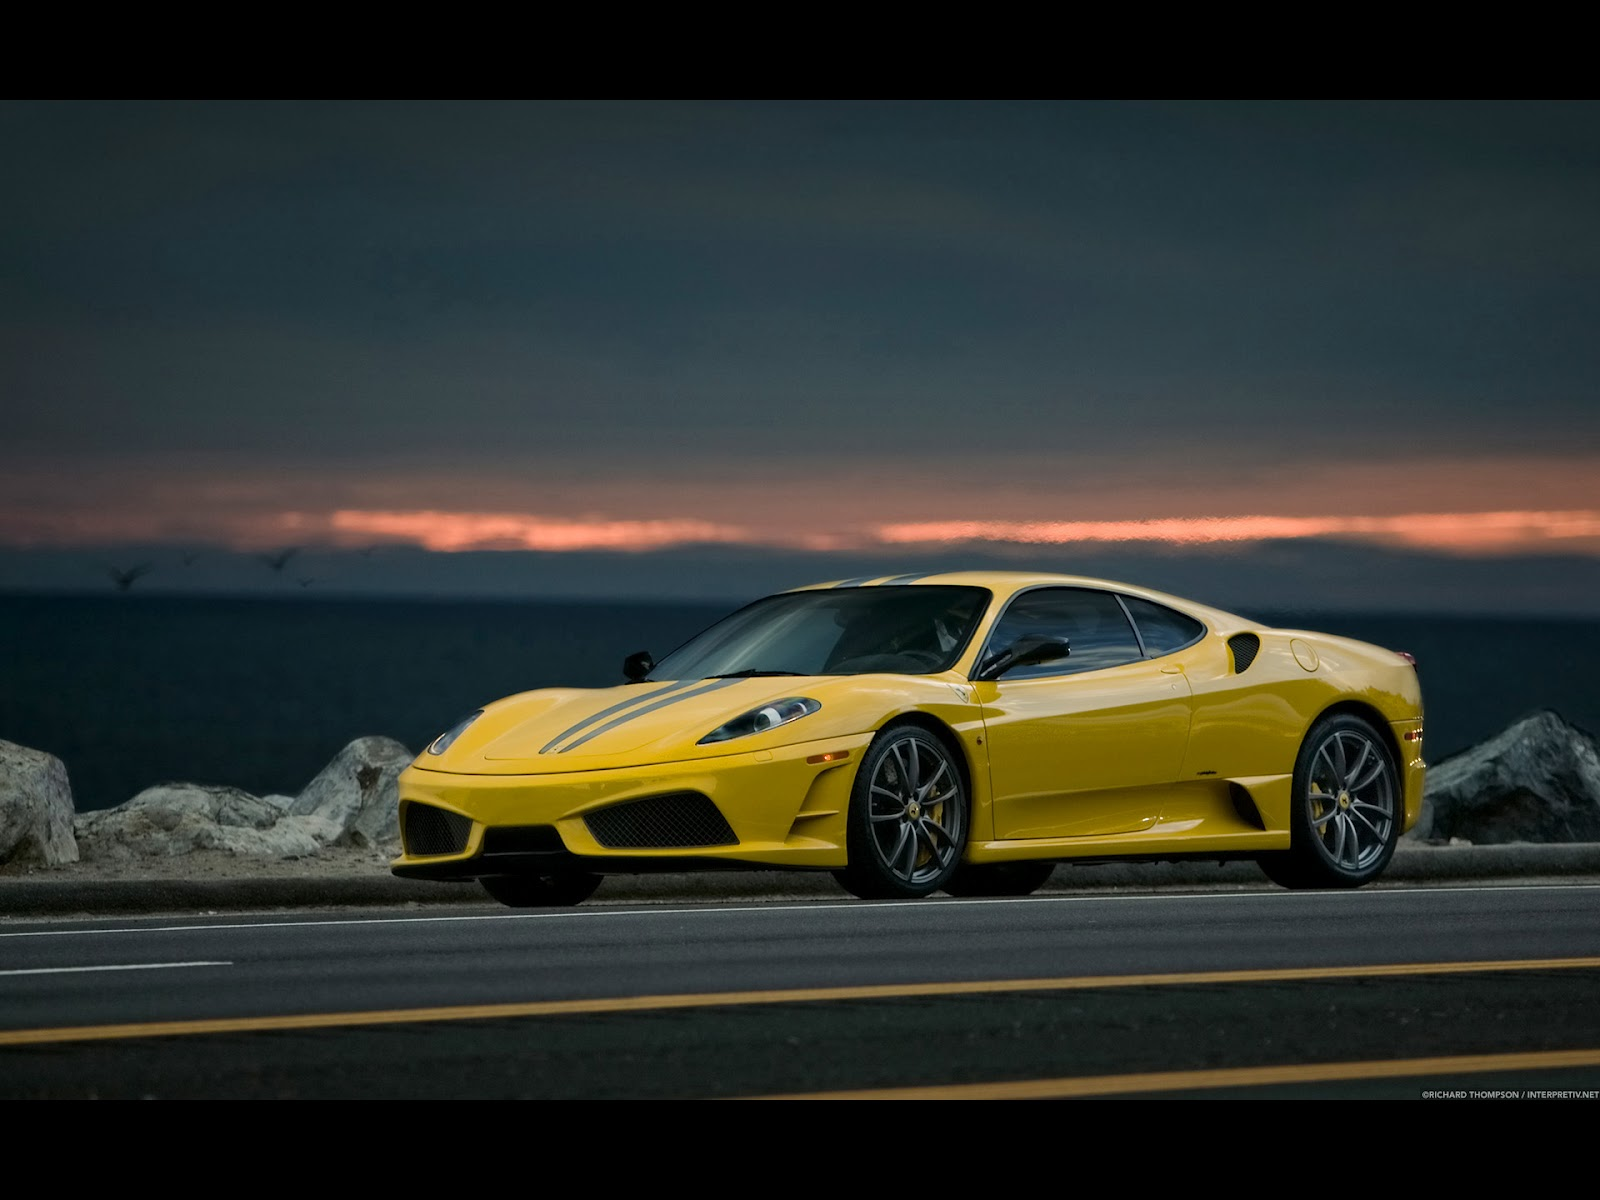 automotive engineering wallpaper ferrari f430 scuderia wallpaper. Black Bedroom Furniture Sets. Home Design Ideas